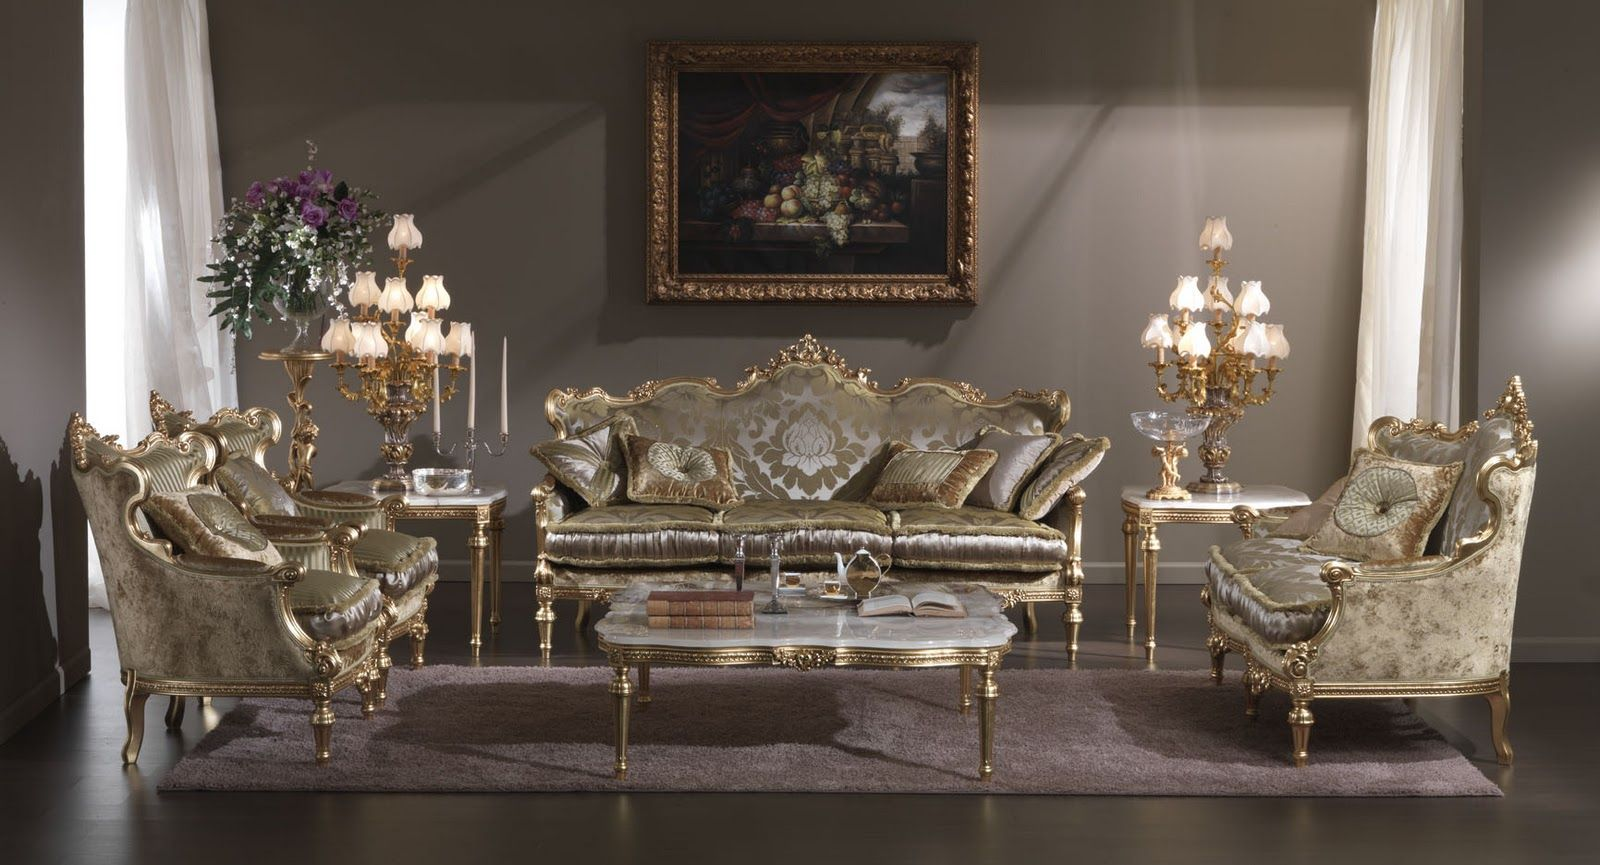 Antique Living Room Designs Gorgeous Italian Living Room Furniture   Italian Classic Furniture Inspiration Design